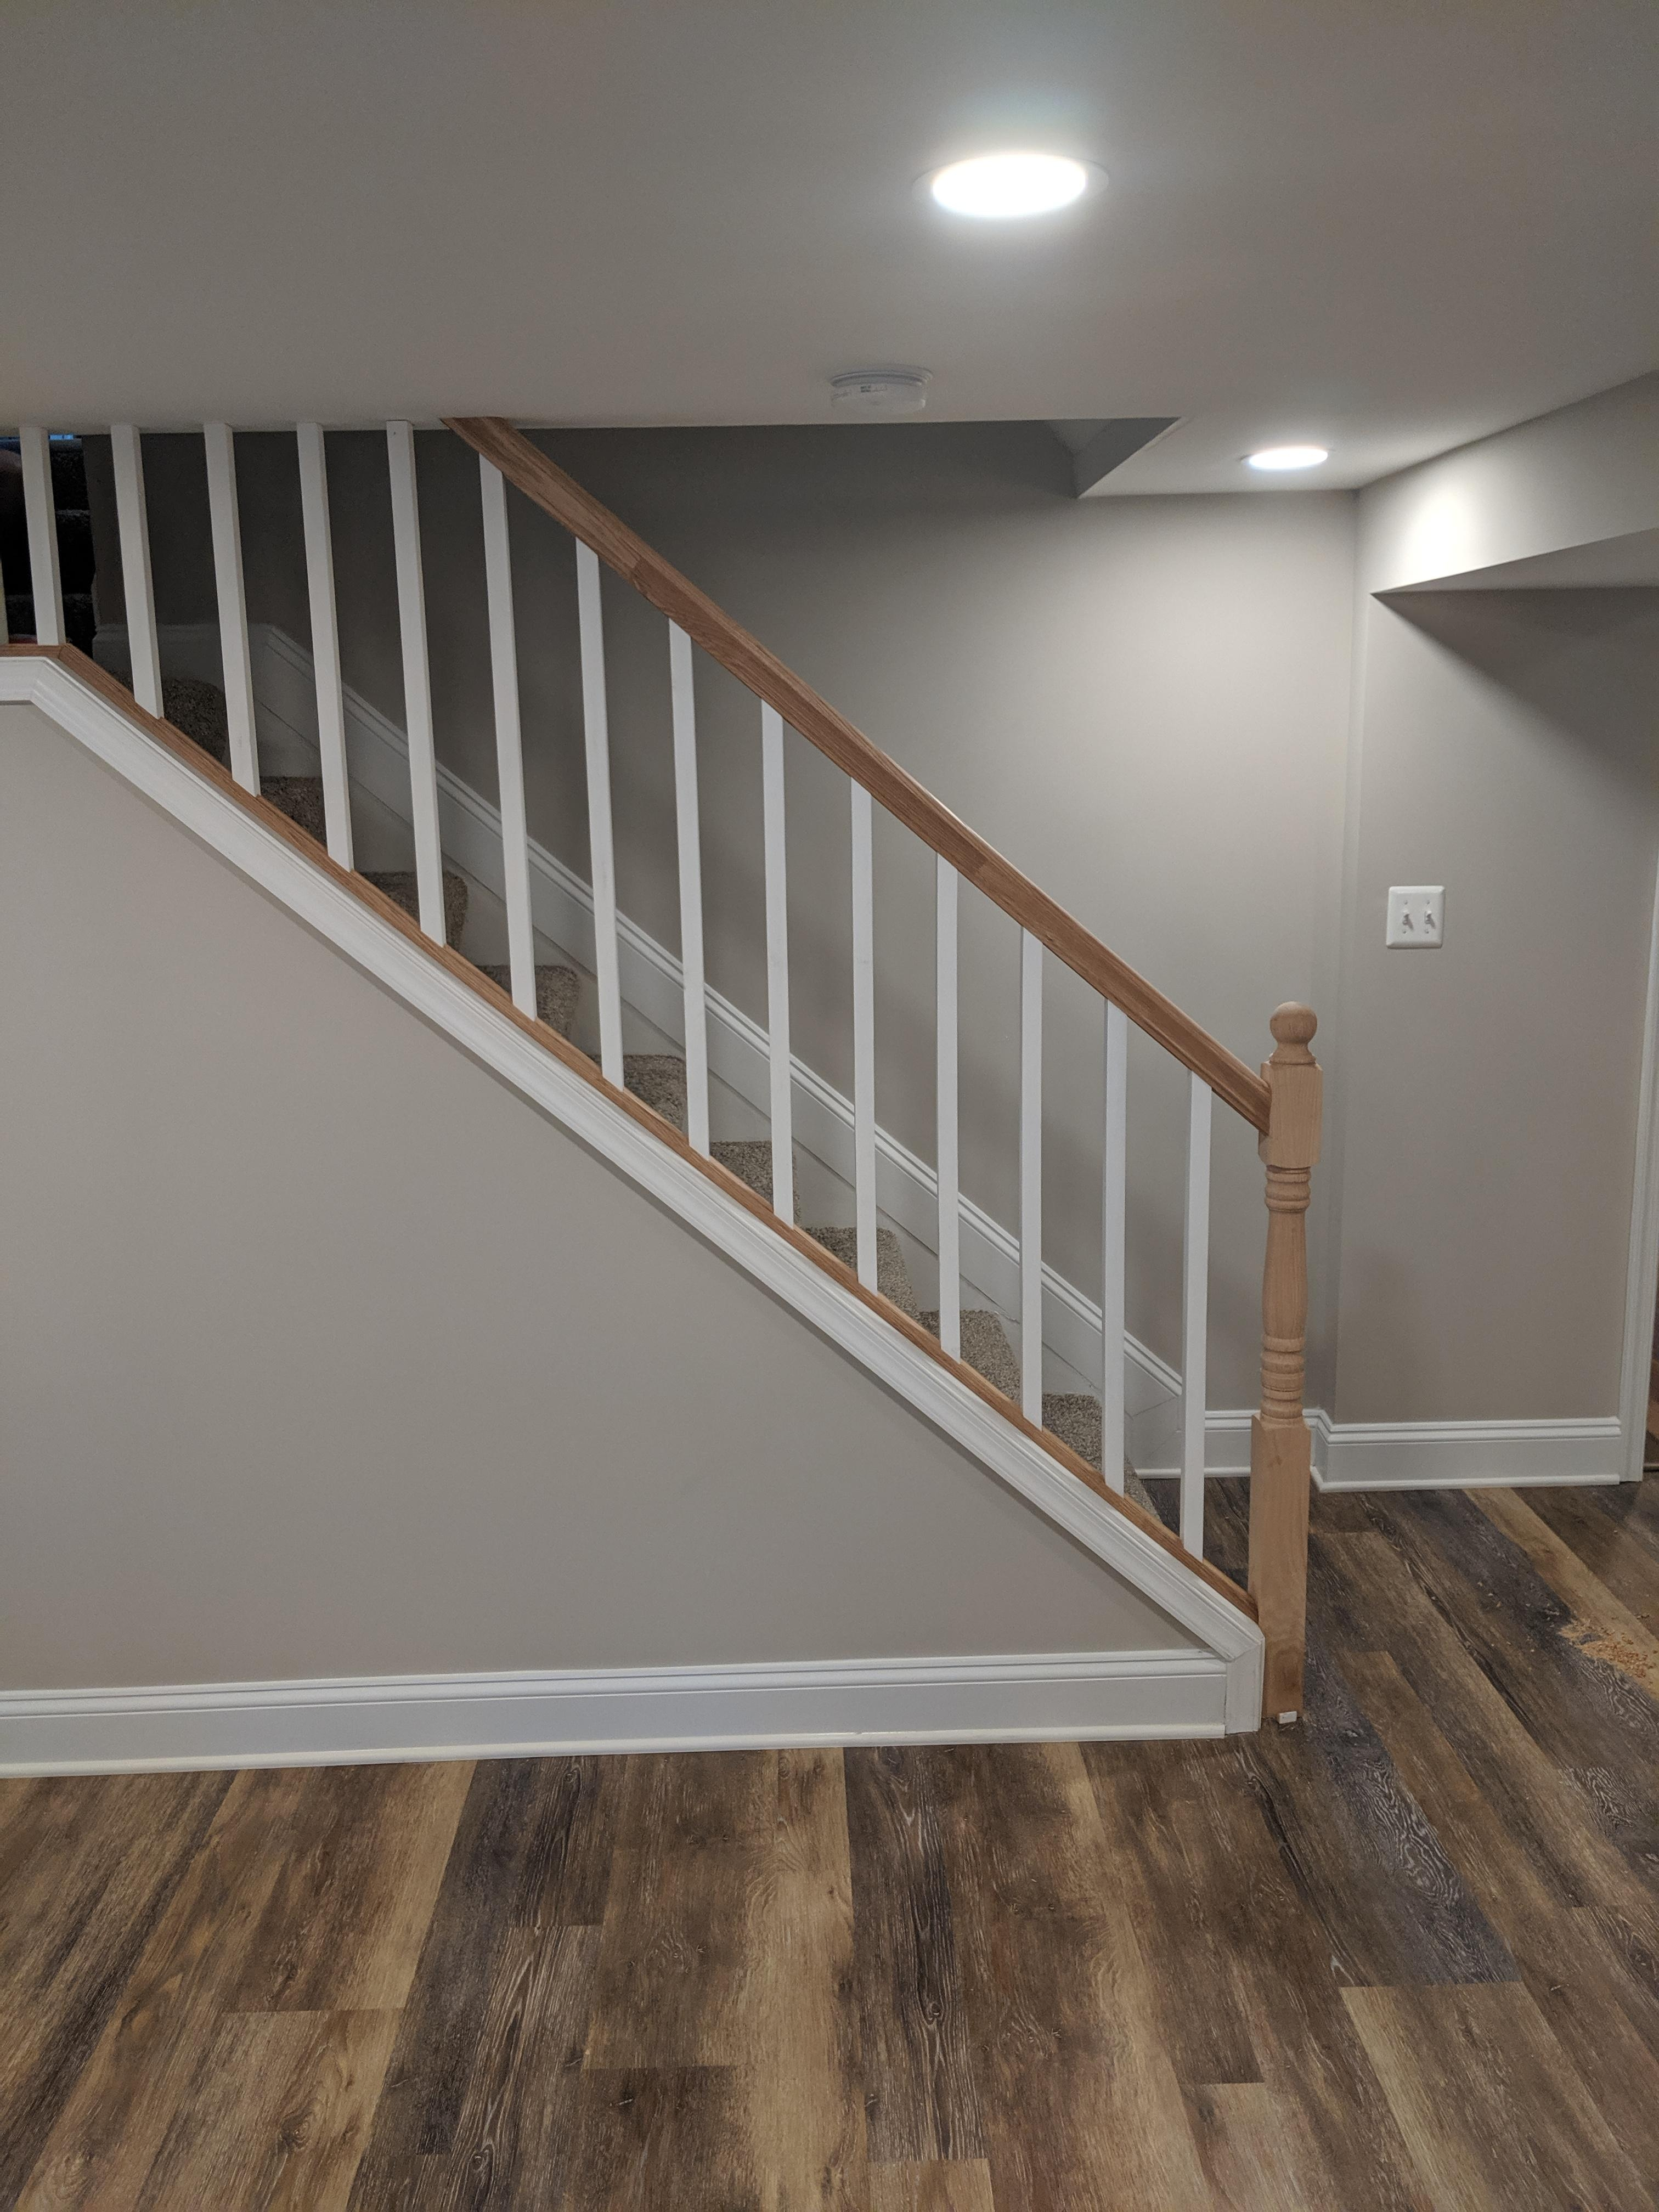 First Time Building An Interior Stair Railing I M About 80 | Interior Stairs And Railings | Traditional | Living Room | Crystal | Rectangular Tube | Inside